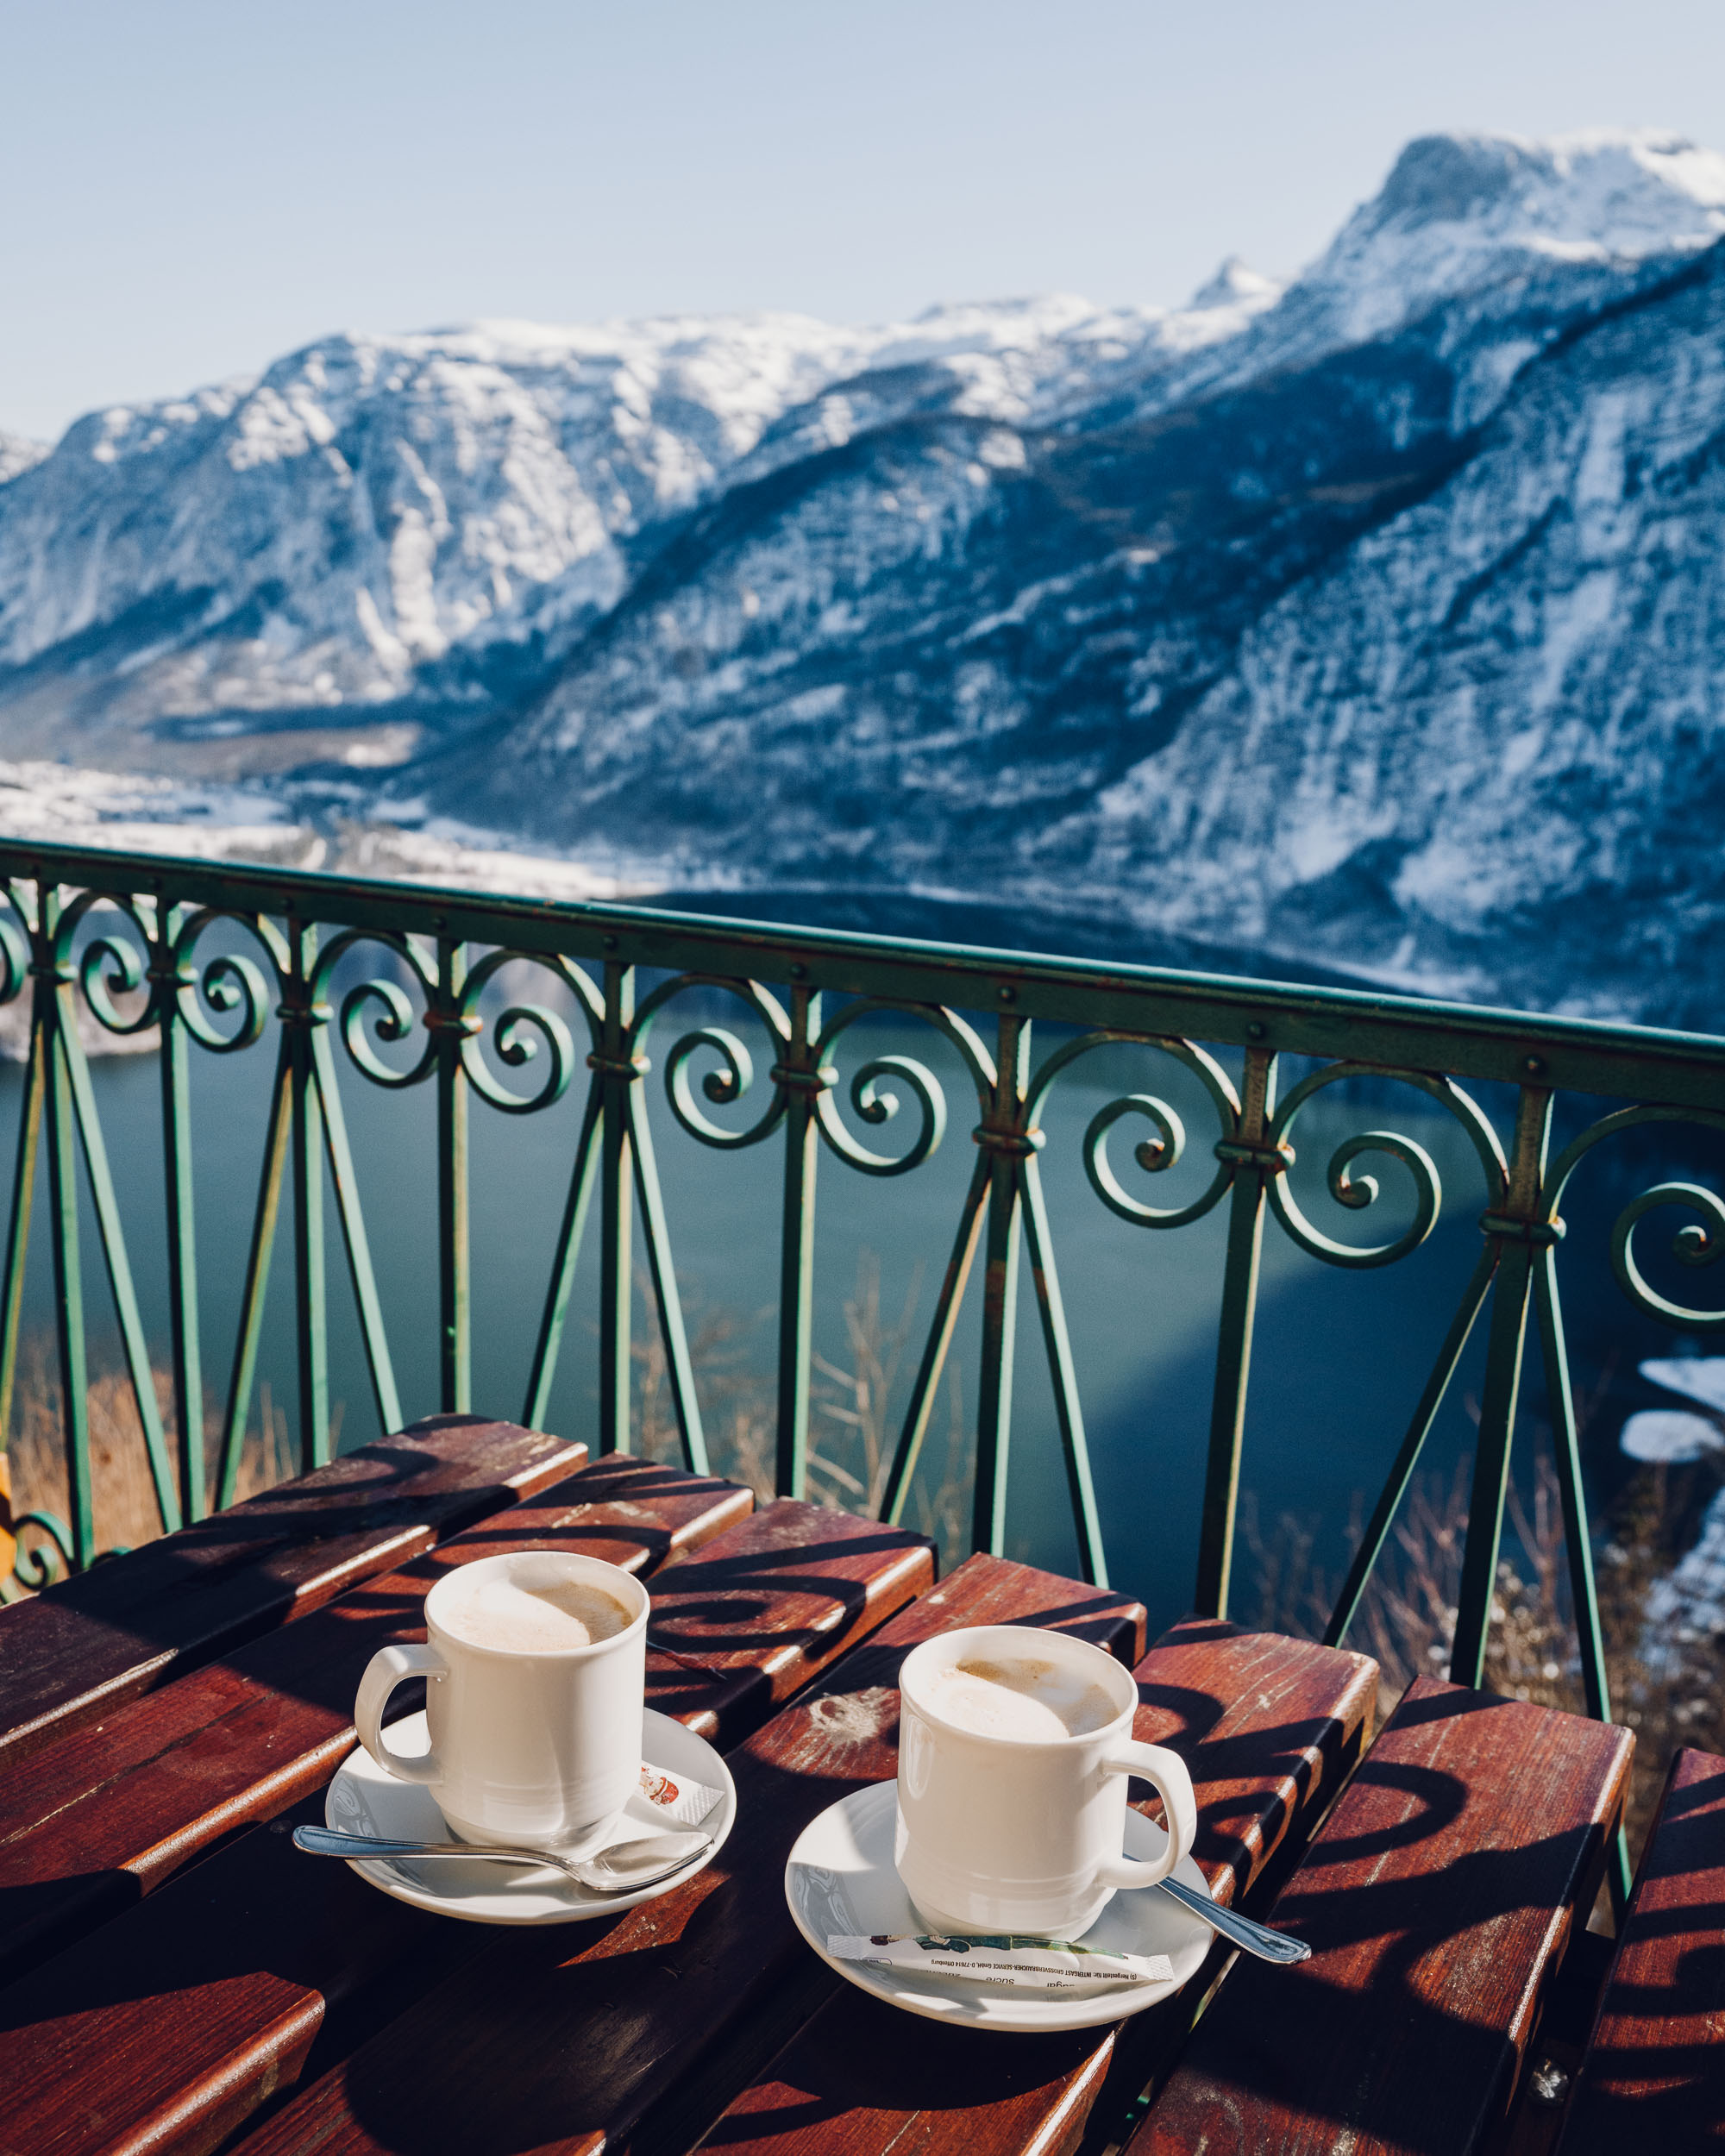 Coffee from the skywalk view and cafe in Hallstatt Austria